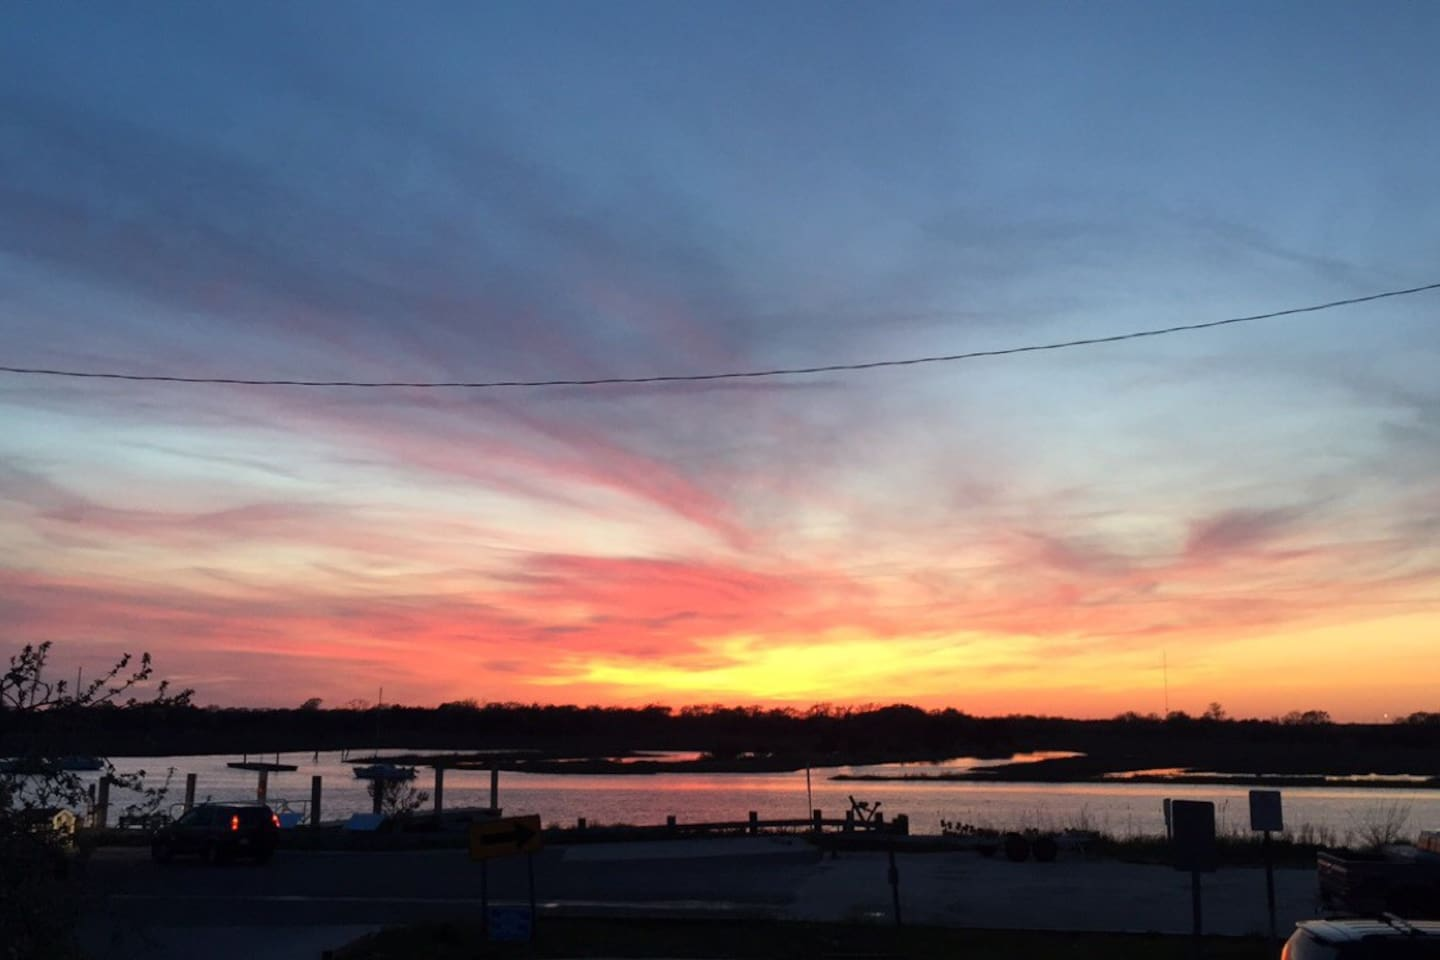 Gorgeous sunset view from the deck